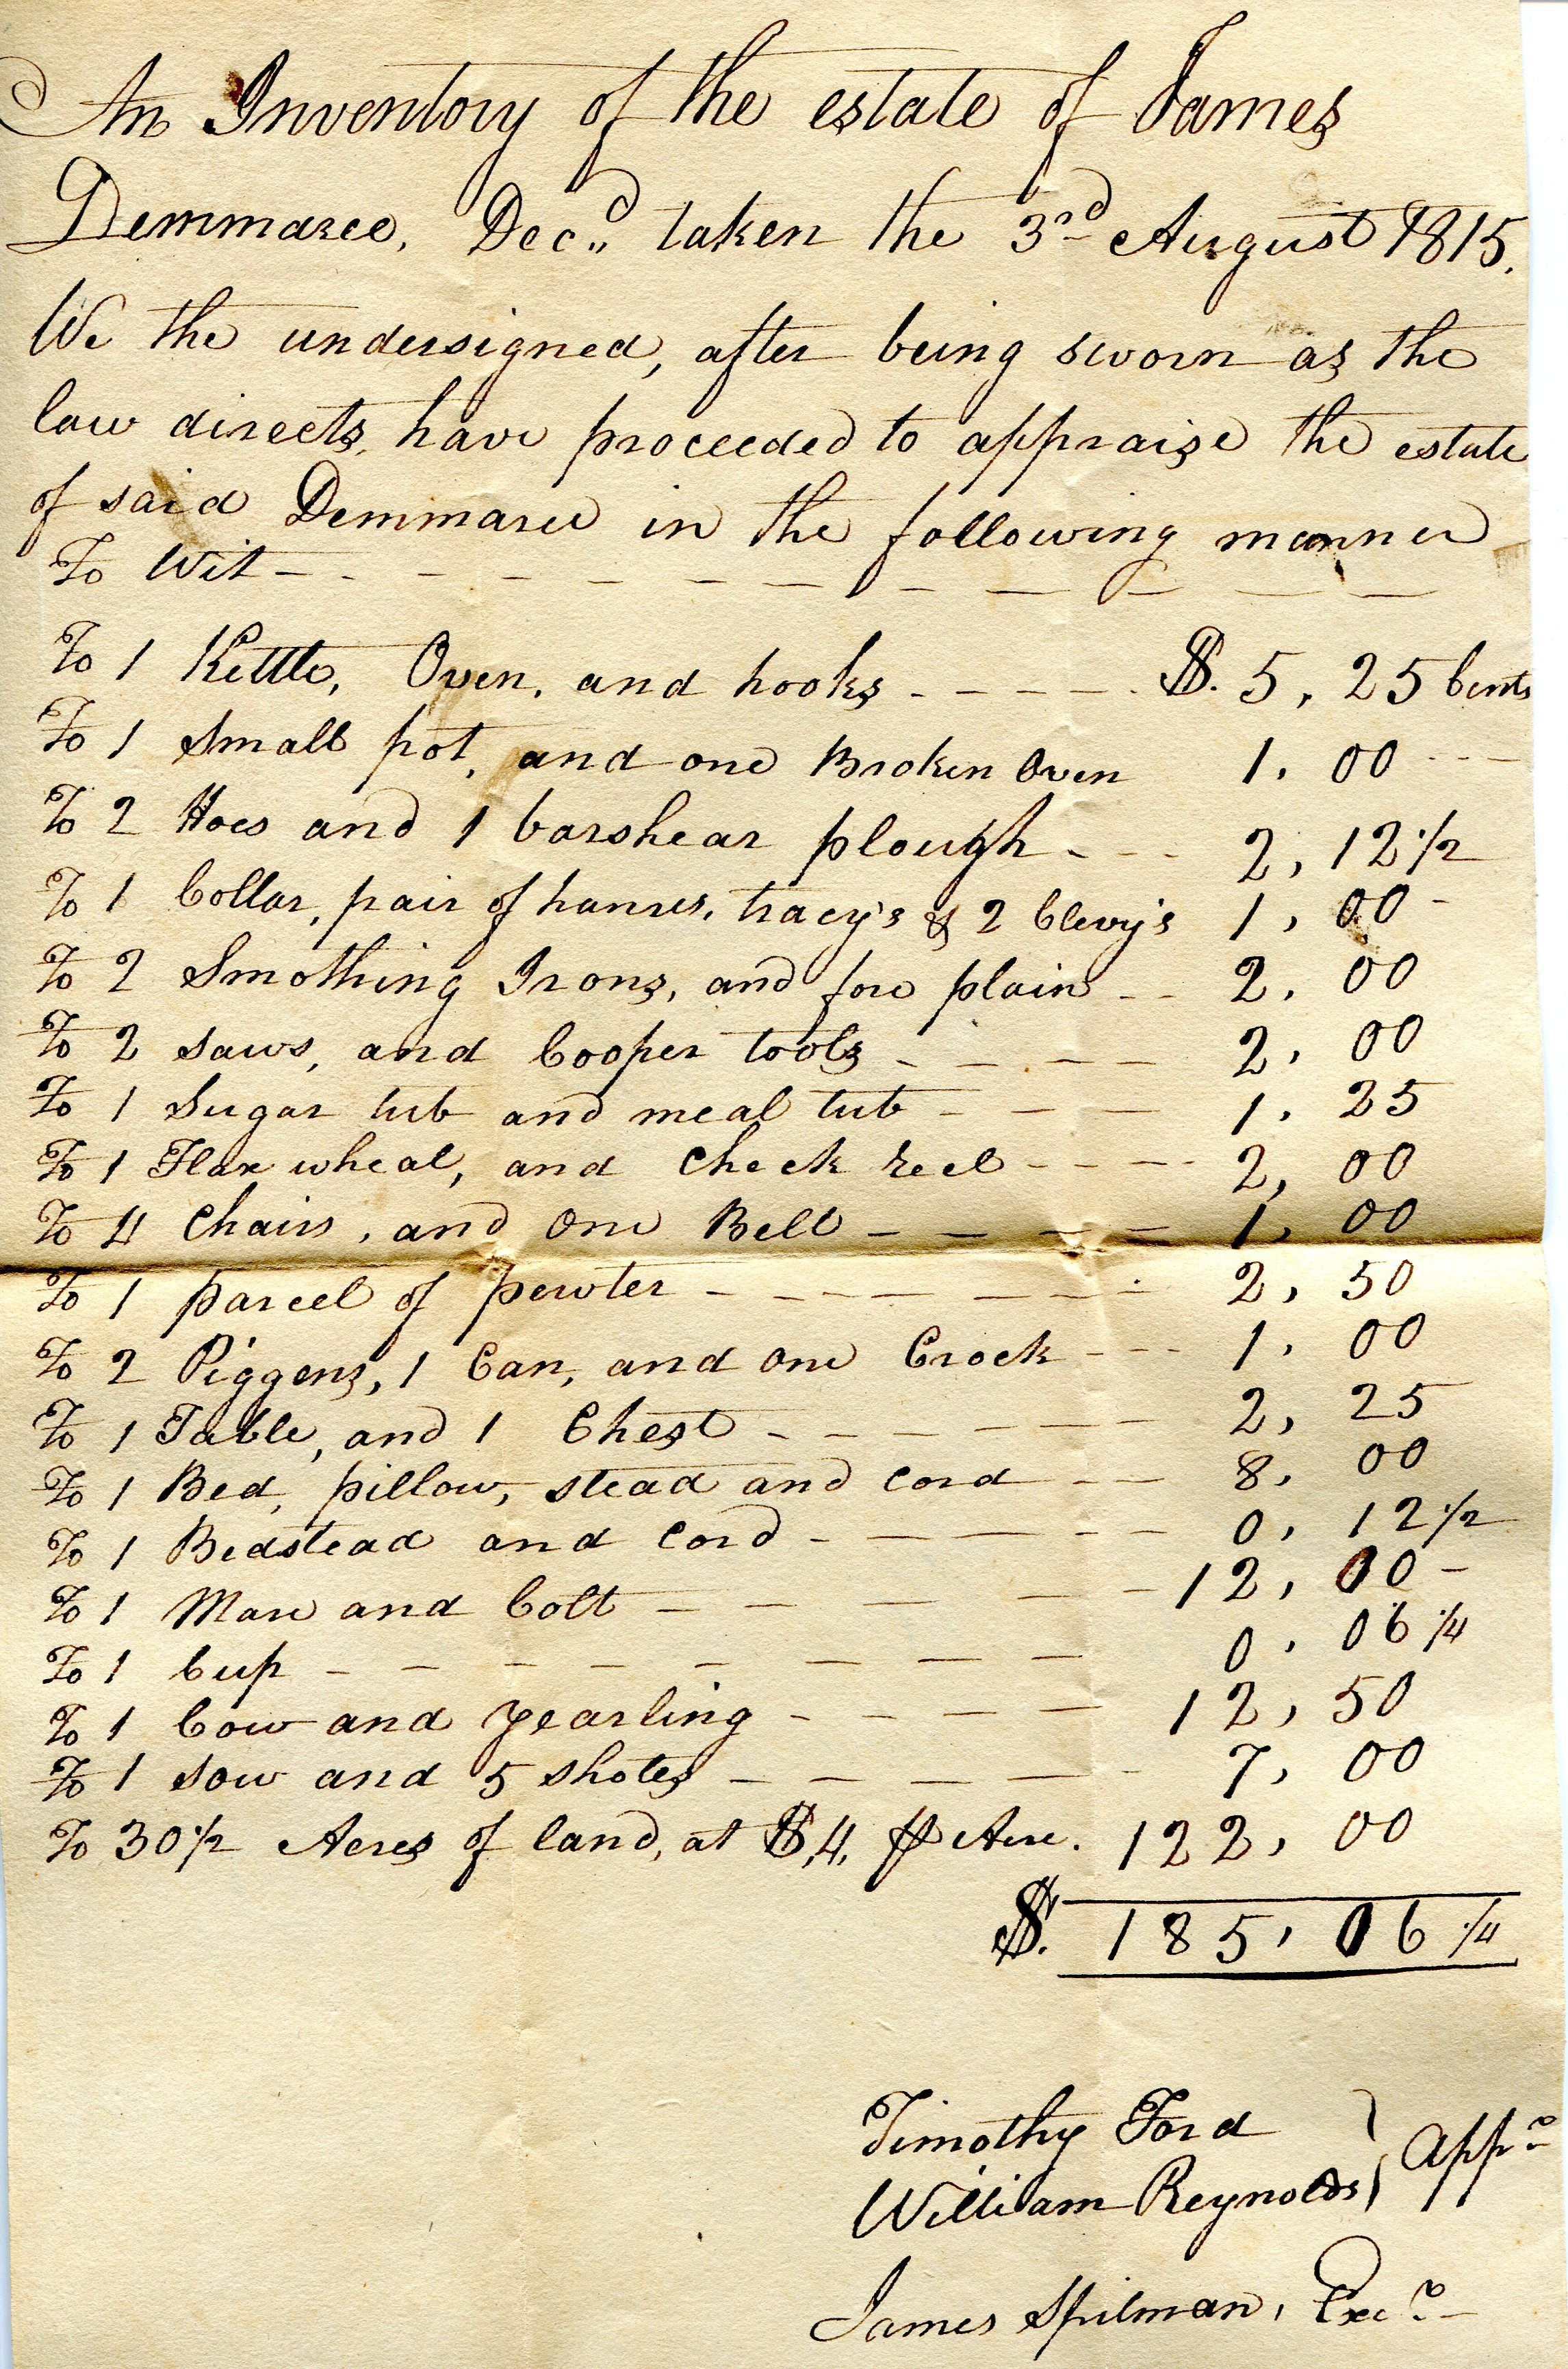 Estate Inventories: Primary Sources for Daily Life in the Past